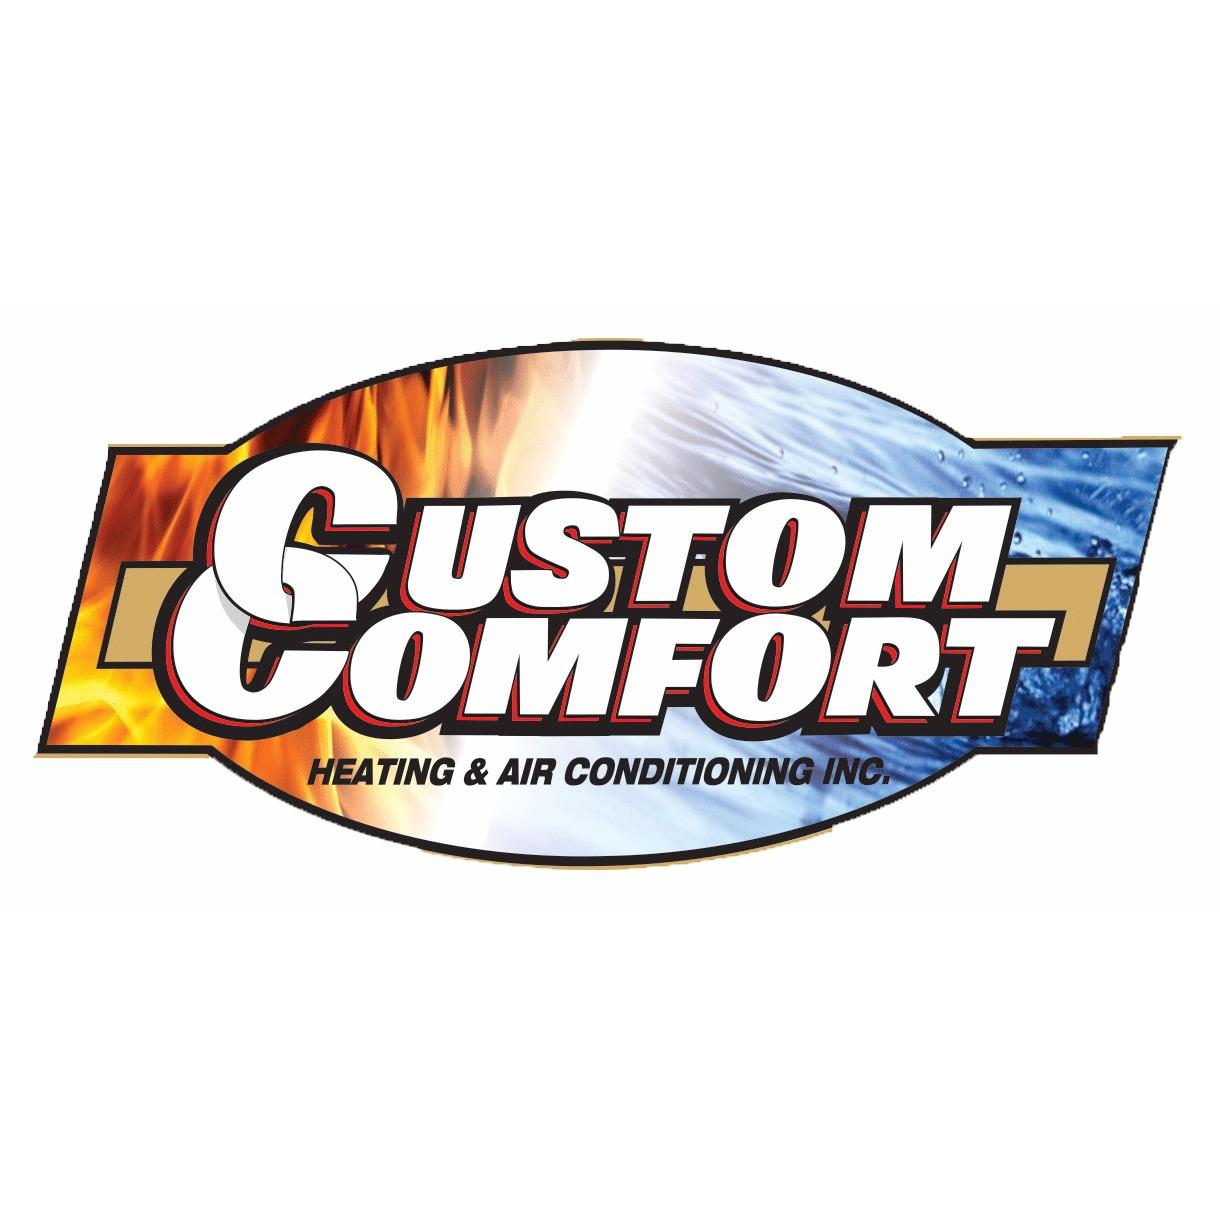 Custom Comfort Heating & A/C Inc - Norton, OH - Heating & Air Conditioning